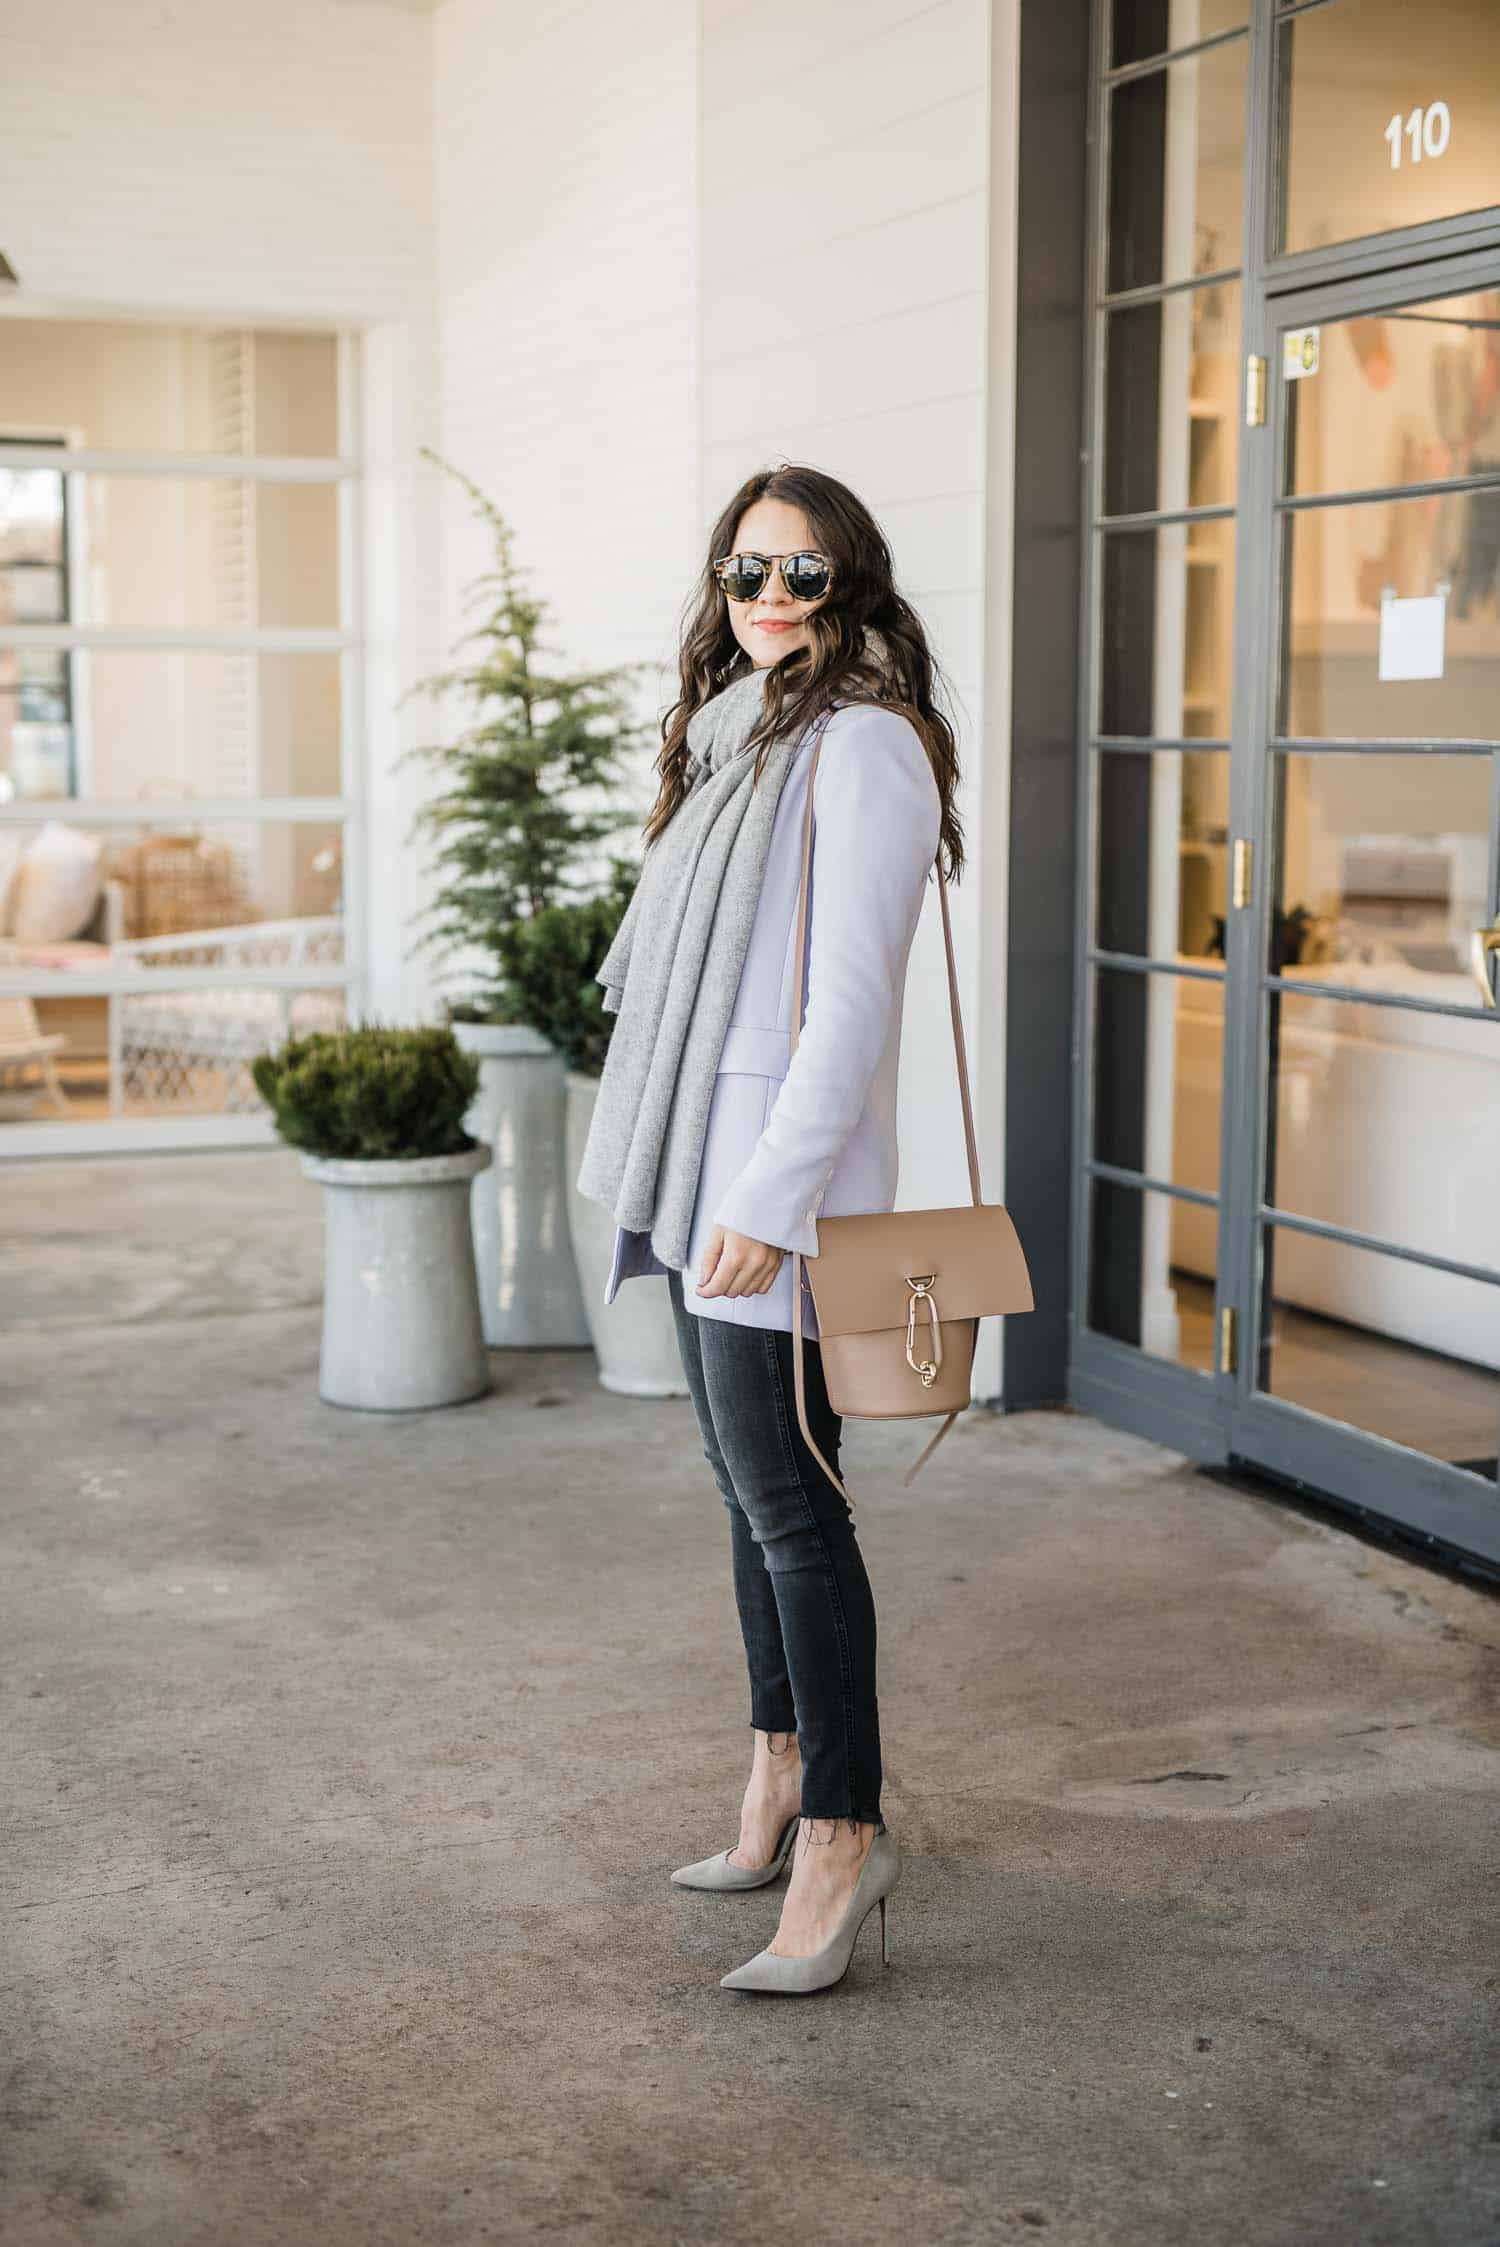 Preppy Winter Outfit With Lilac and Grey Scarf